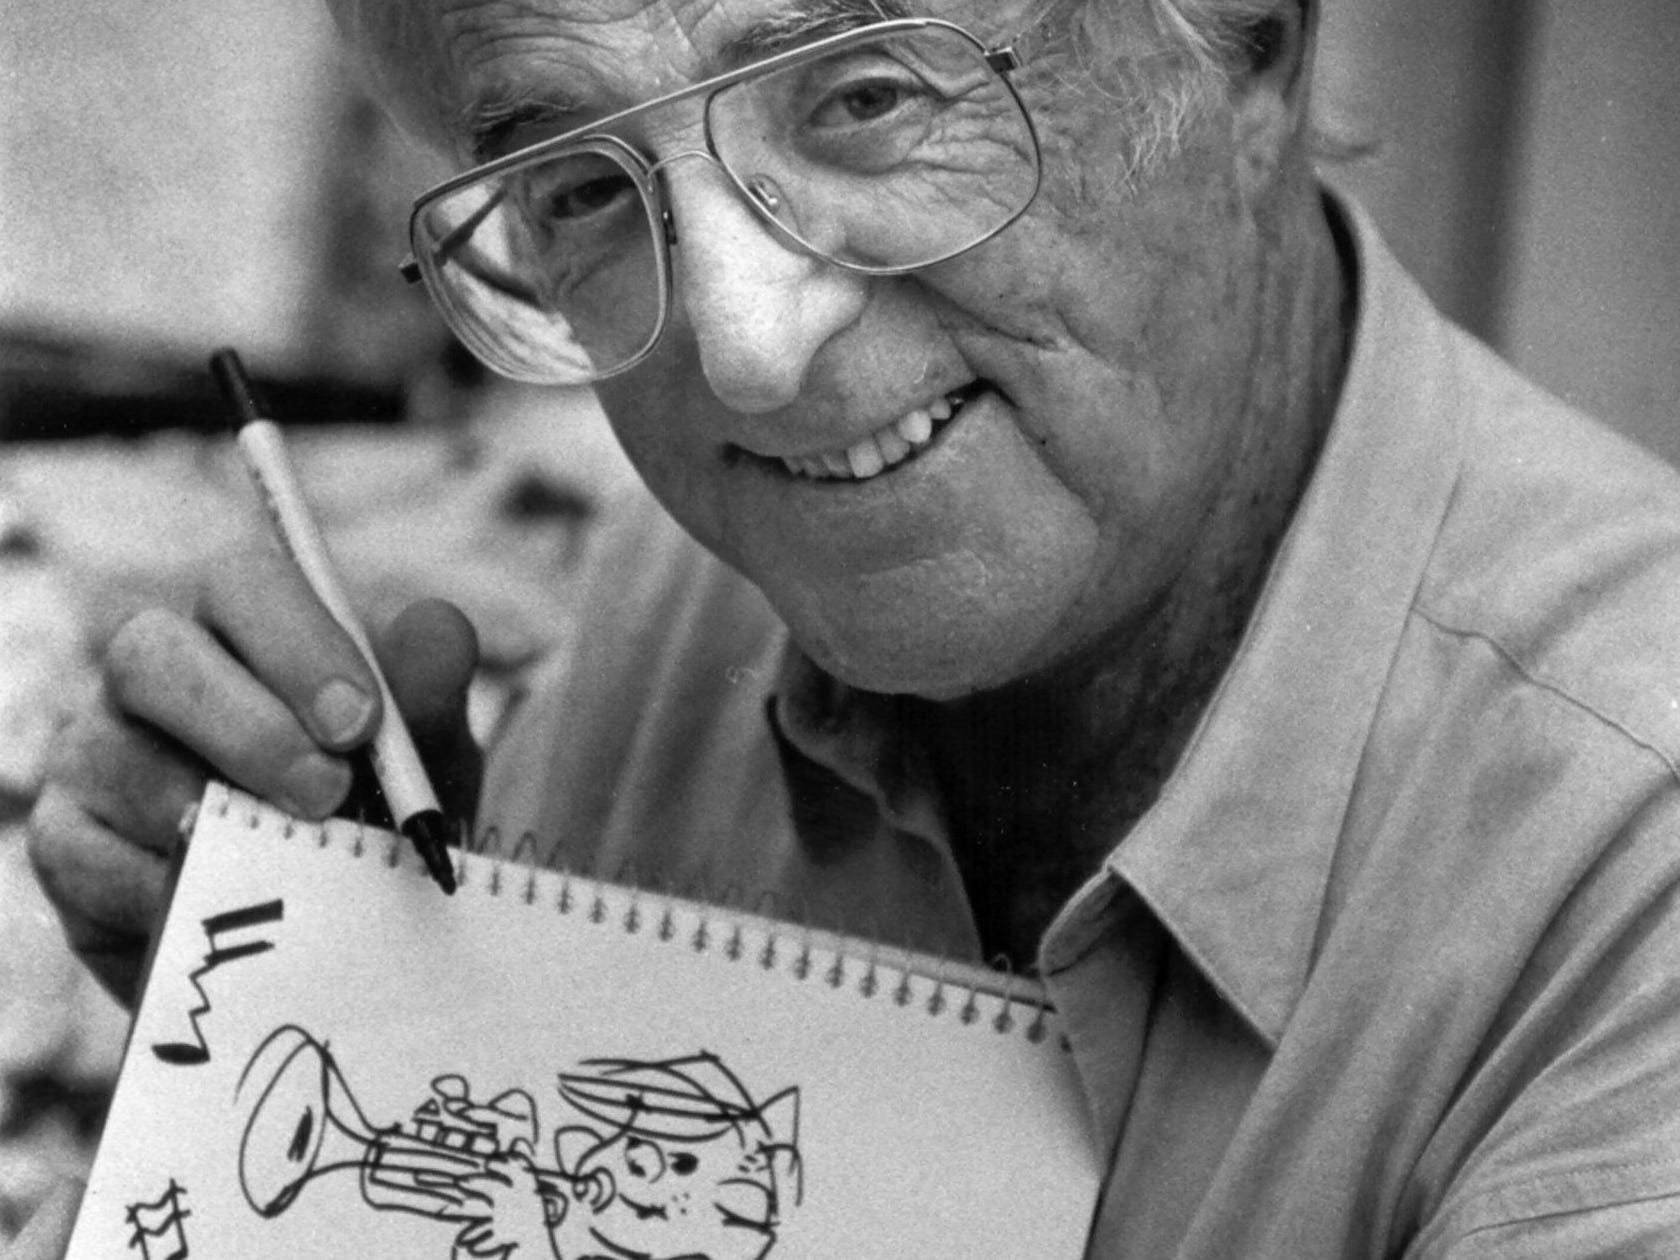 Cartoonist Hank Ketcham and his creation, Dennis the Menace, make a statement about Memphis and its music heritage during a visit at The Peabody Hotel on Oct. 28, 1991.